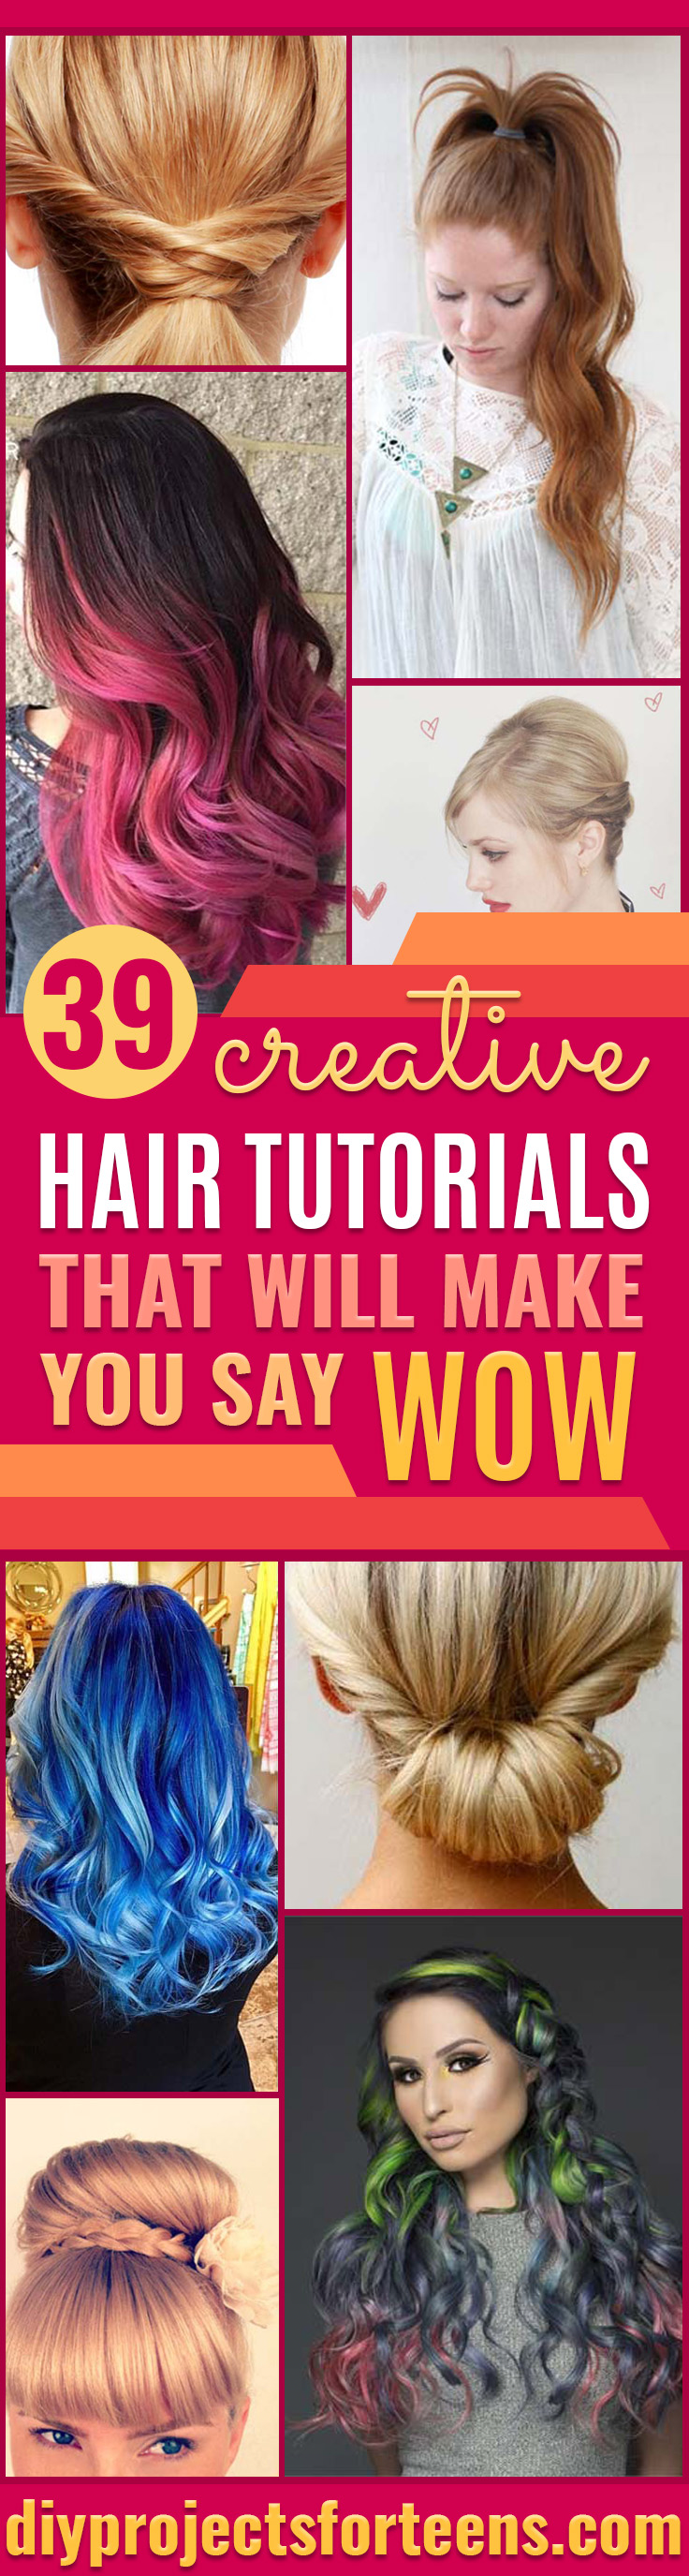 Easy Hair Styling Tutorials - Cool Hair Styles Step By Step - Ideas for Hair Color, Rainbow, Galaxy and Unique Styles for Long, Short and Medium Hair - Braids, Dyes, Instructions for Teens and Women #hairstyles #hairideas #beauty #teens #easyhairstyles